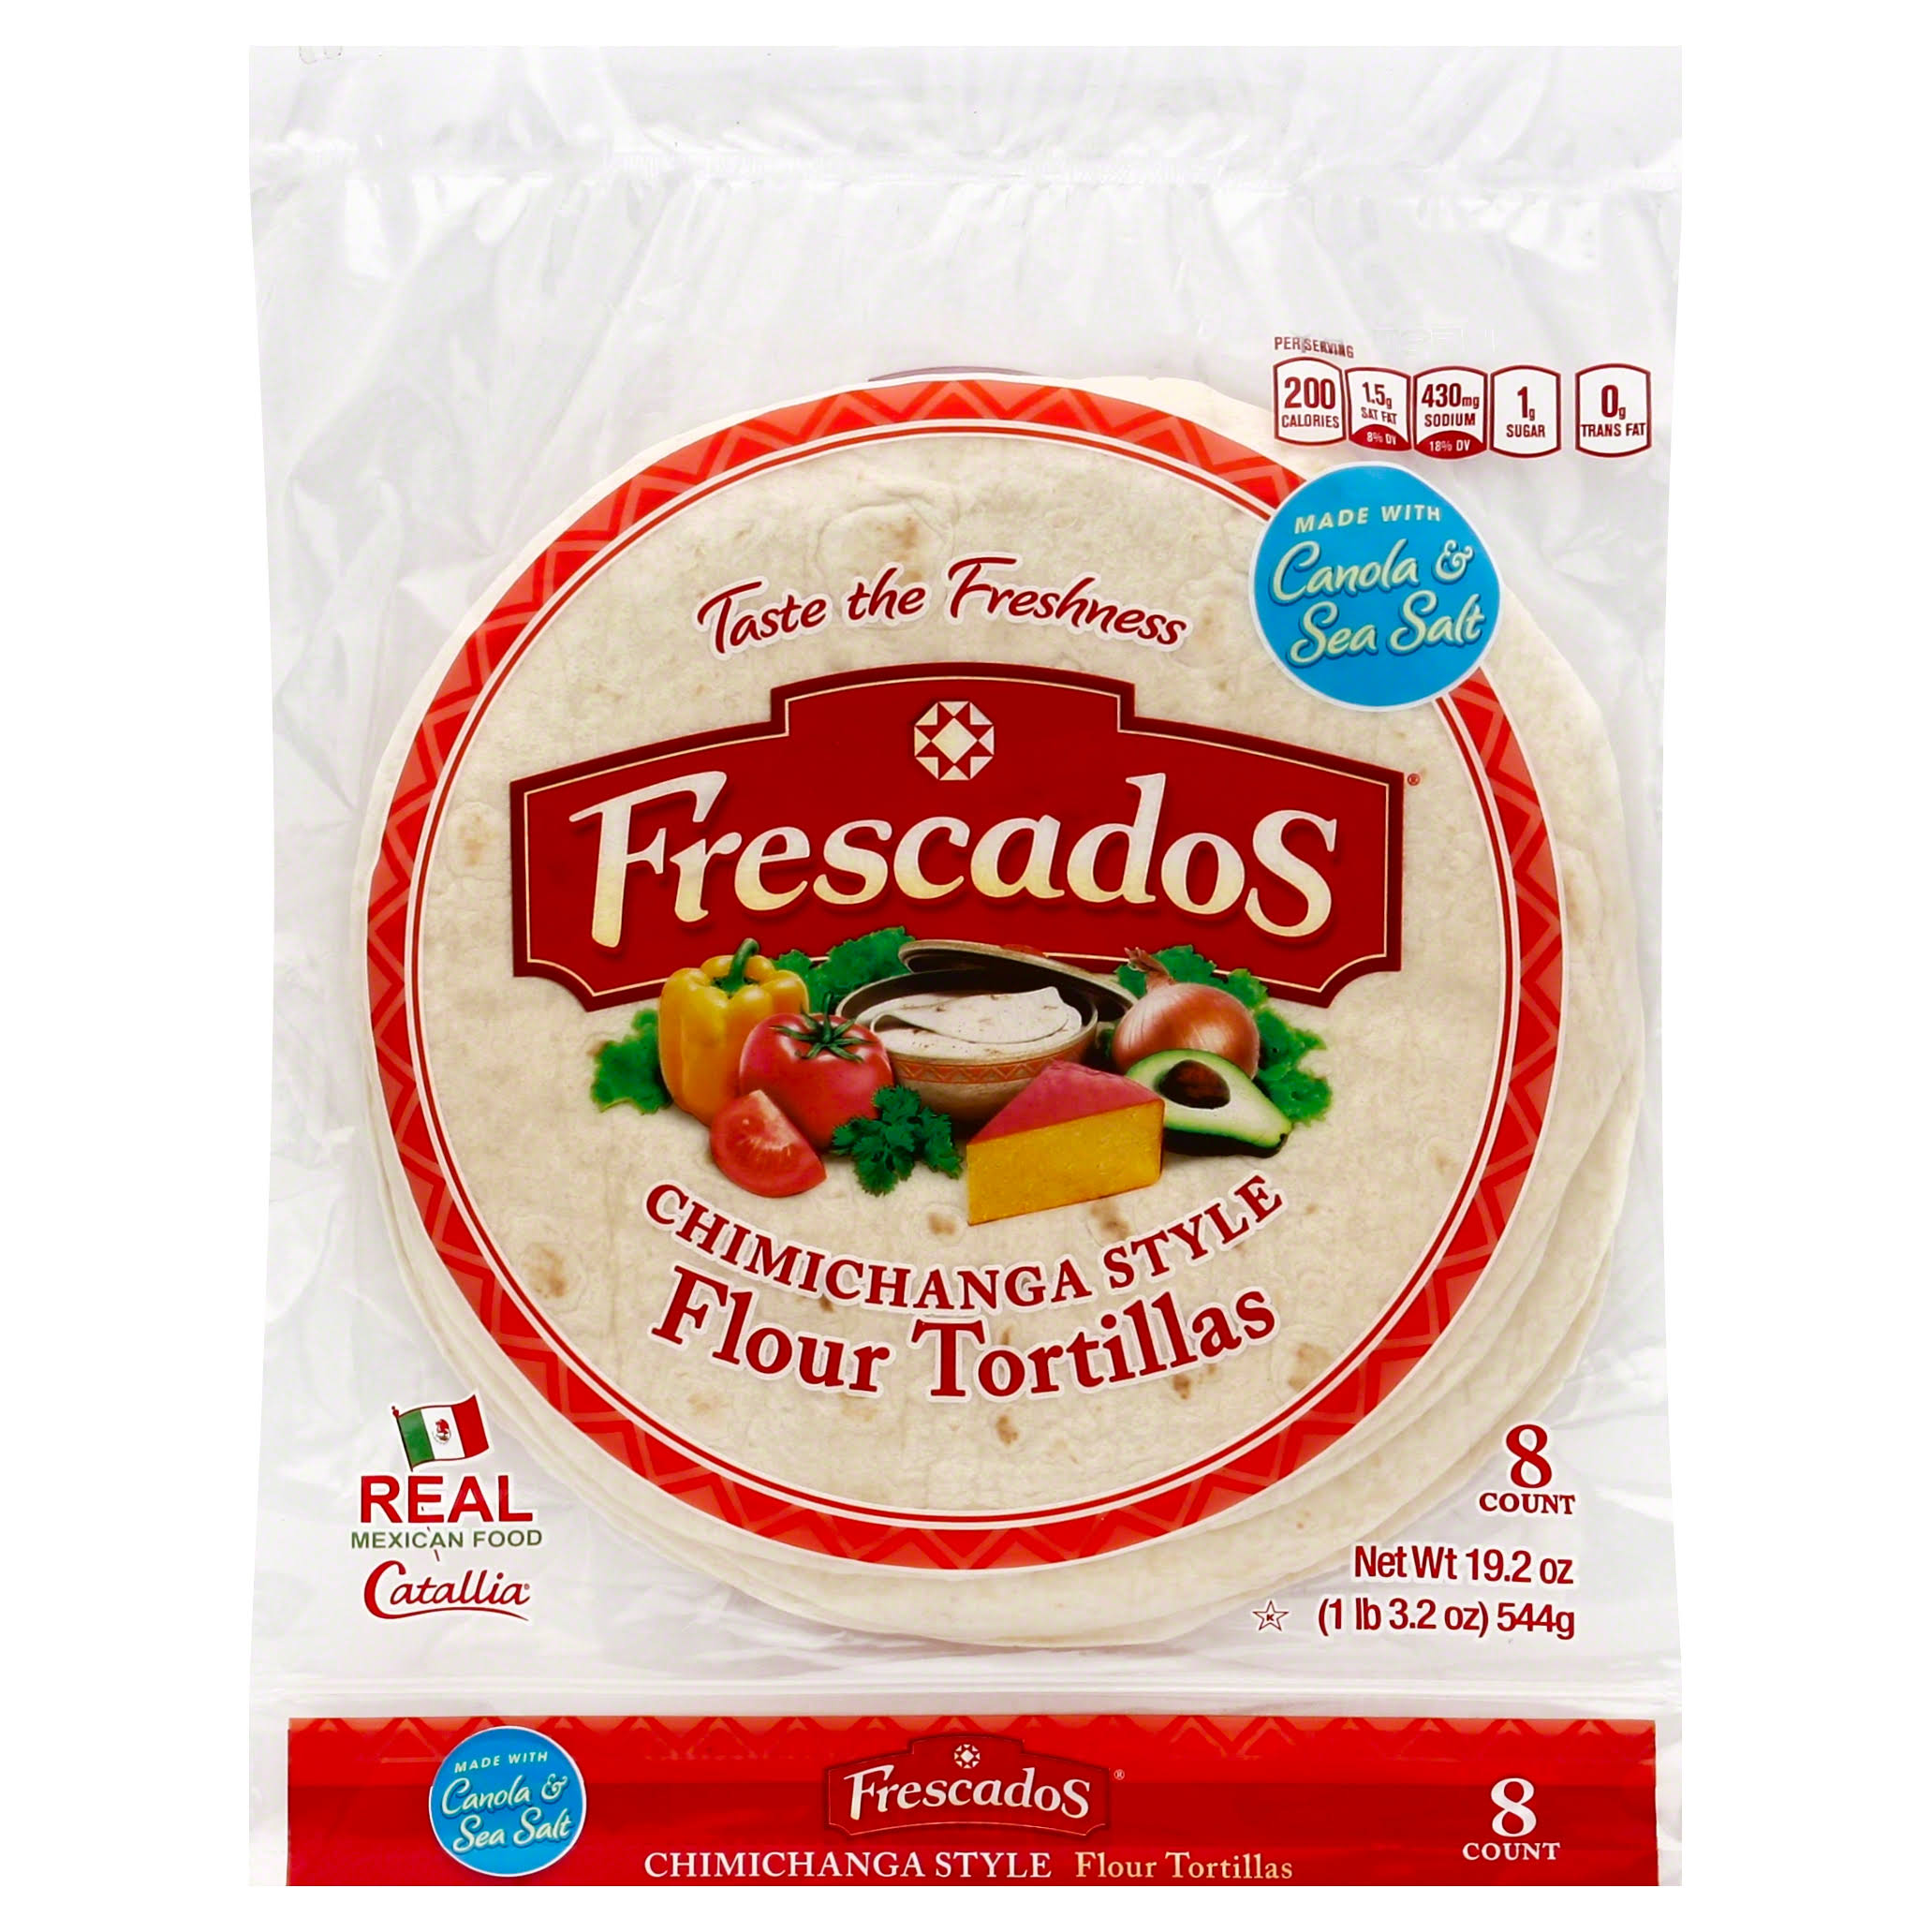 Frescados Tortillas, Flour, Chimichanga Style - 8 count, 19.2 oz